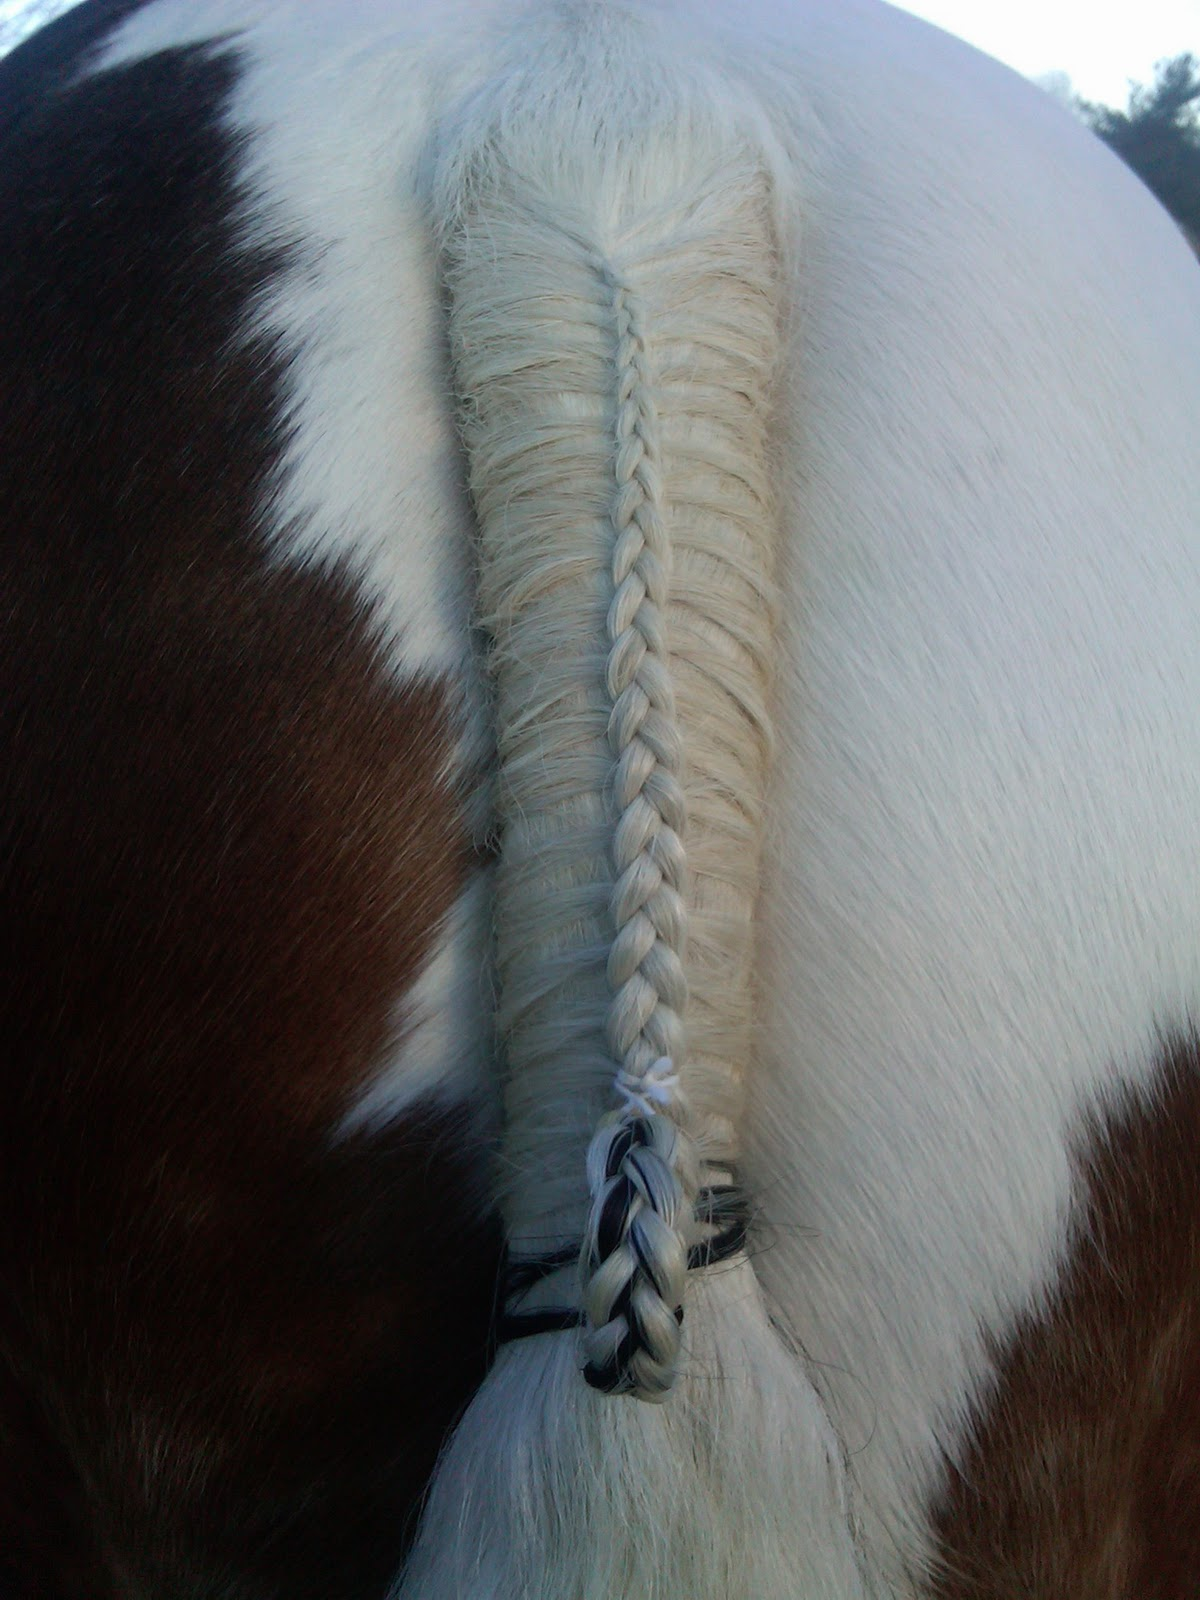 Longest horse tail in the world